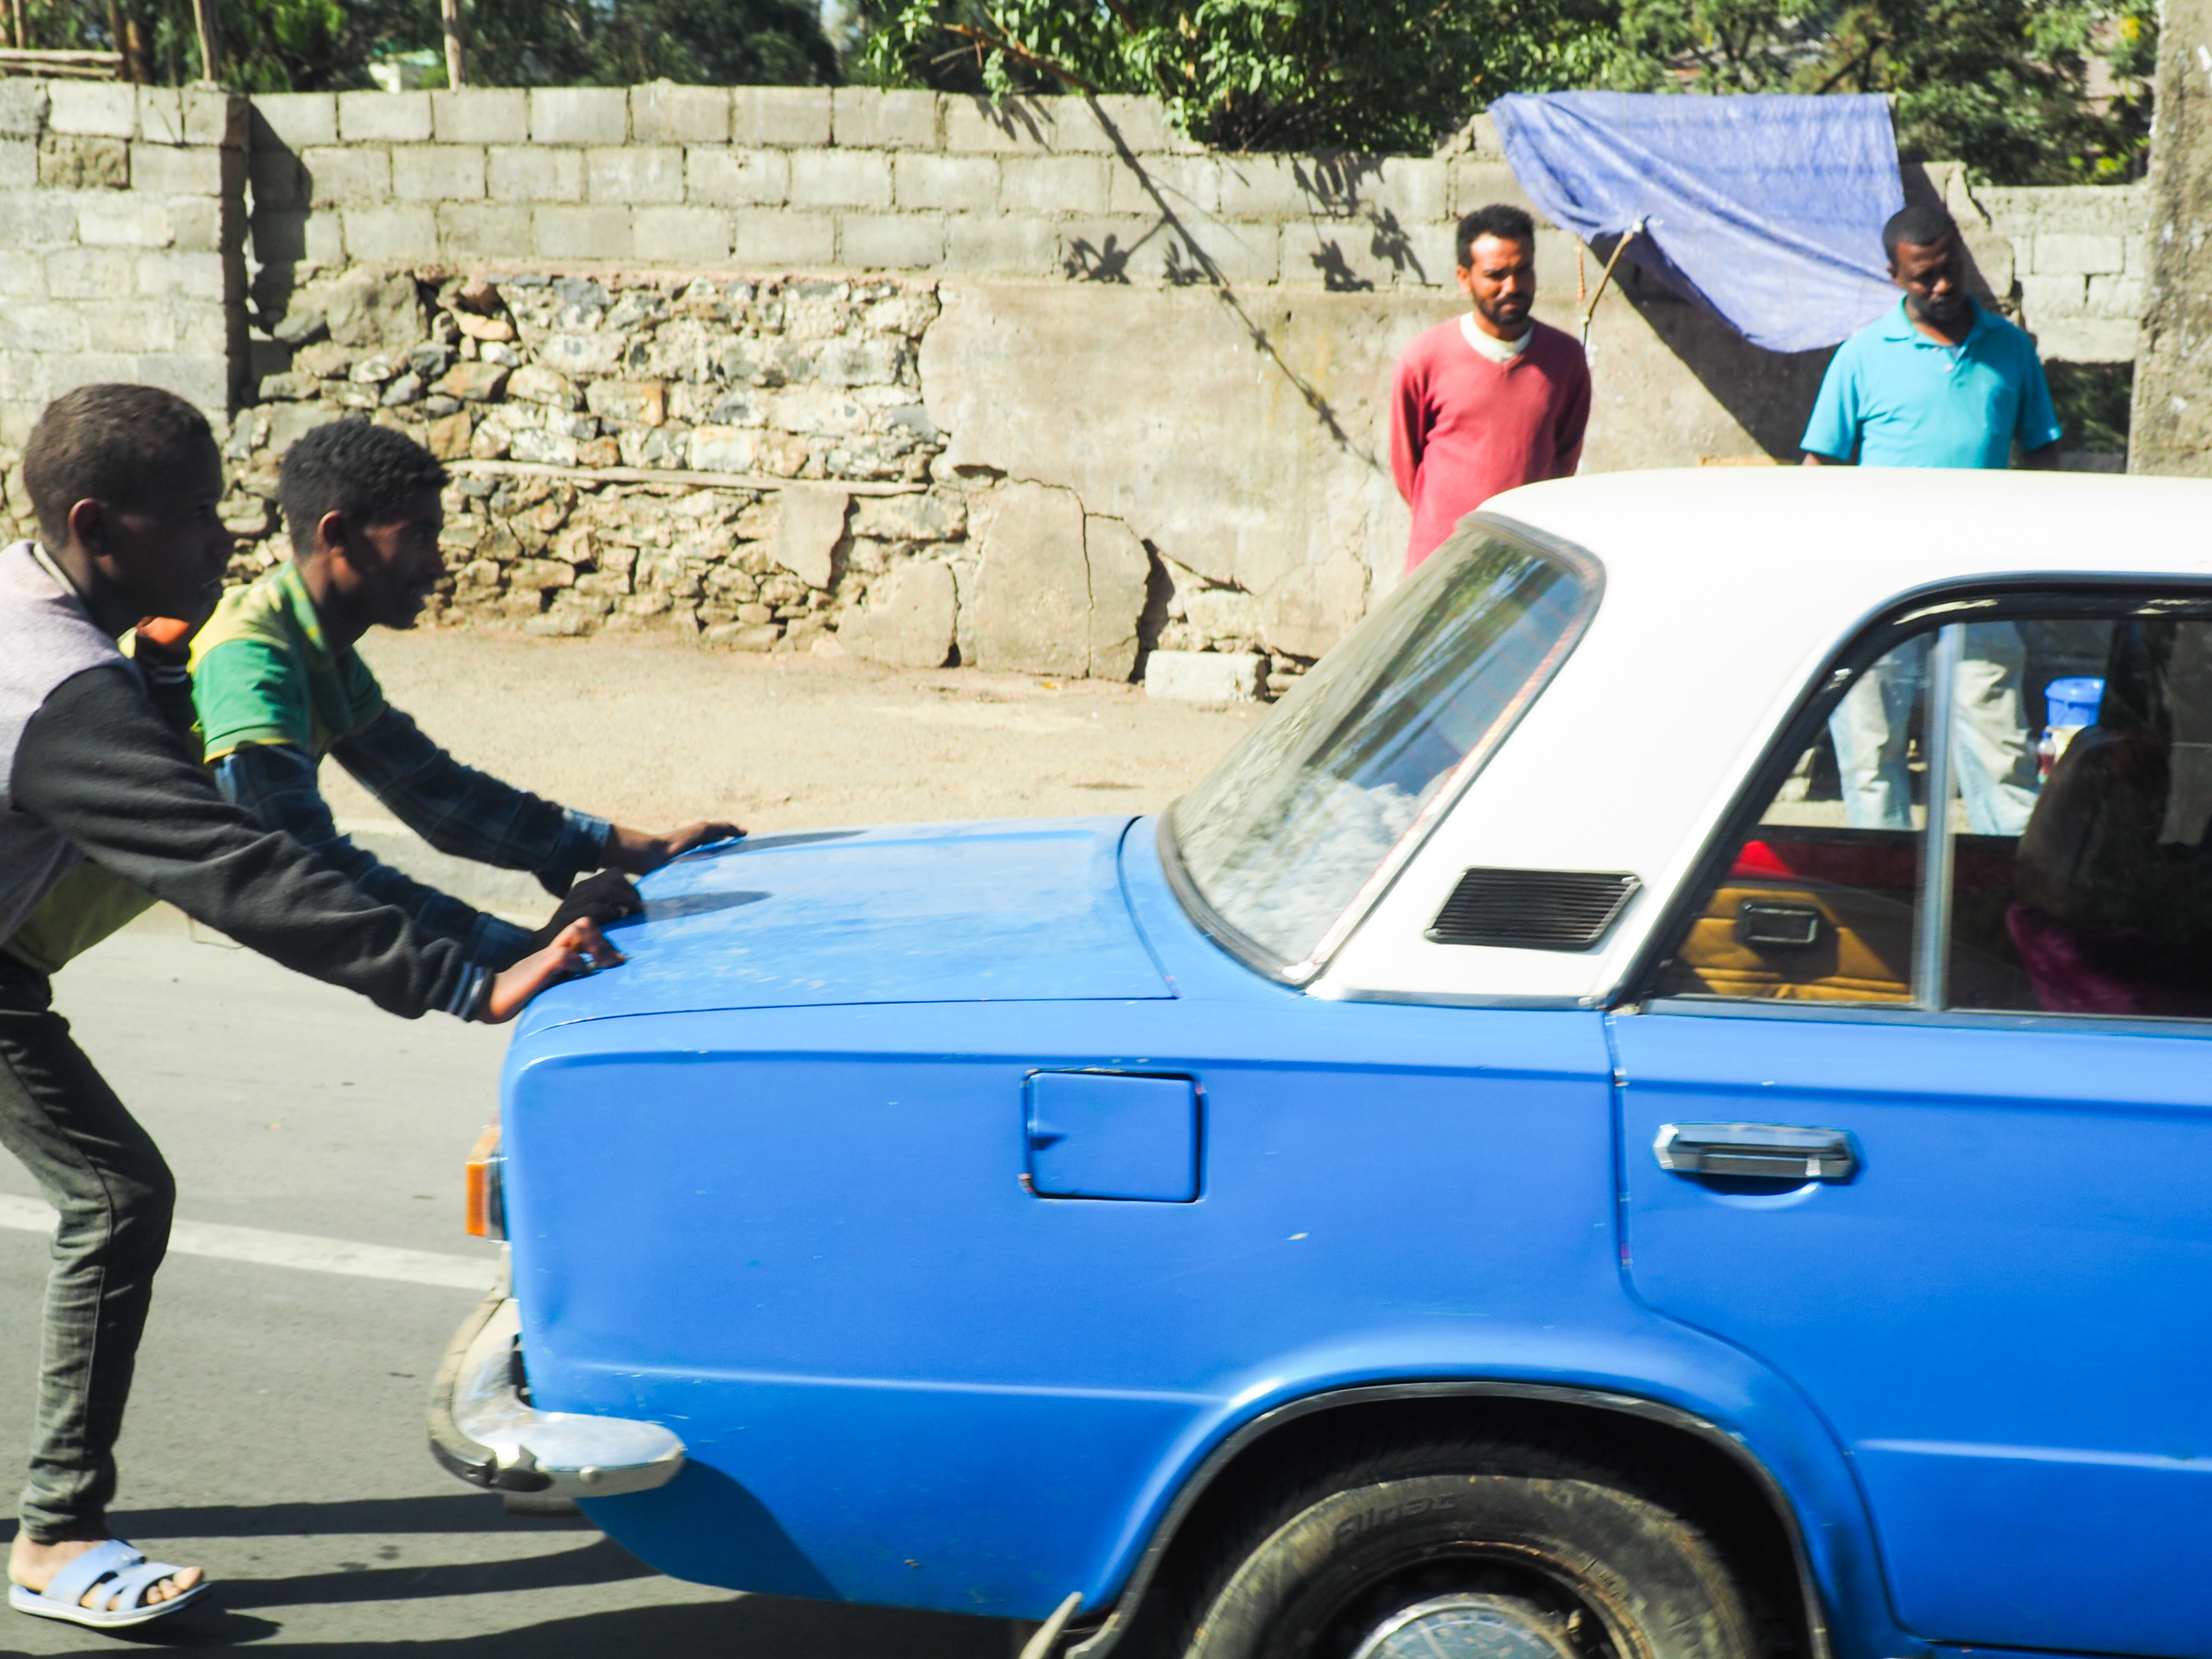 There are thousands of blue and white Russian Ladas on the streets of Addis, one of the legacies of Ethiopia's socialist regime. Almost all are used as taxi cabs. This one seems to be on its last legs.